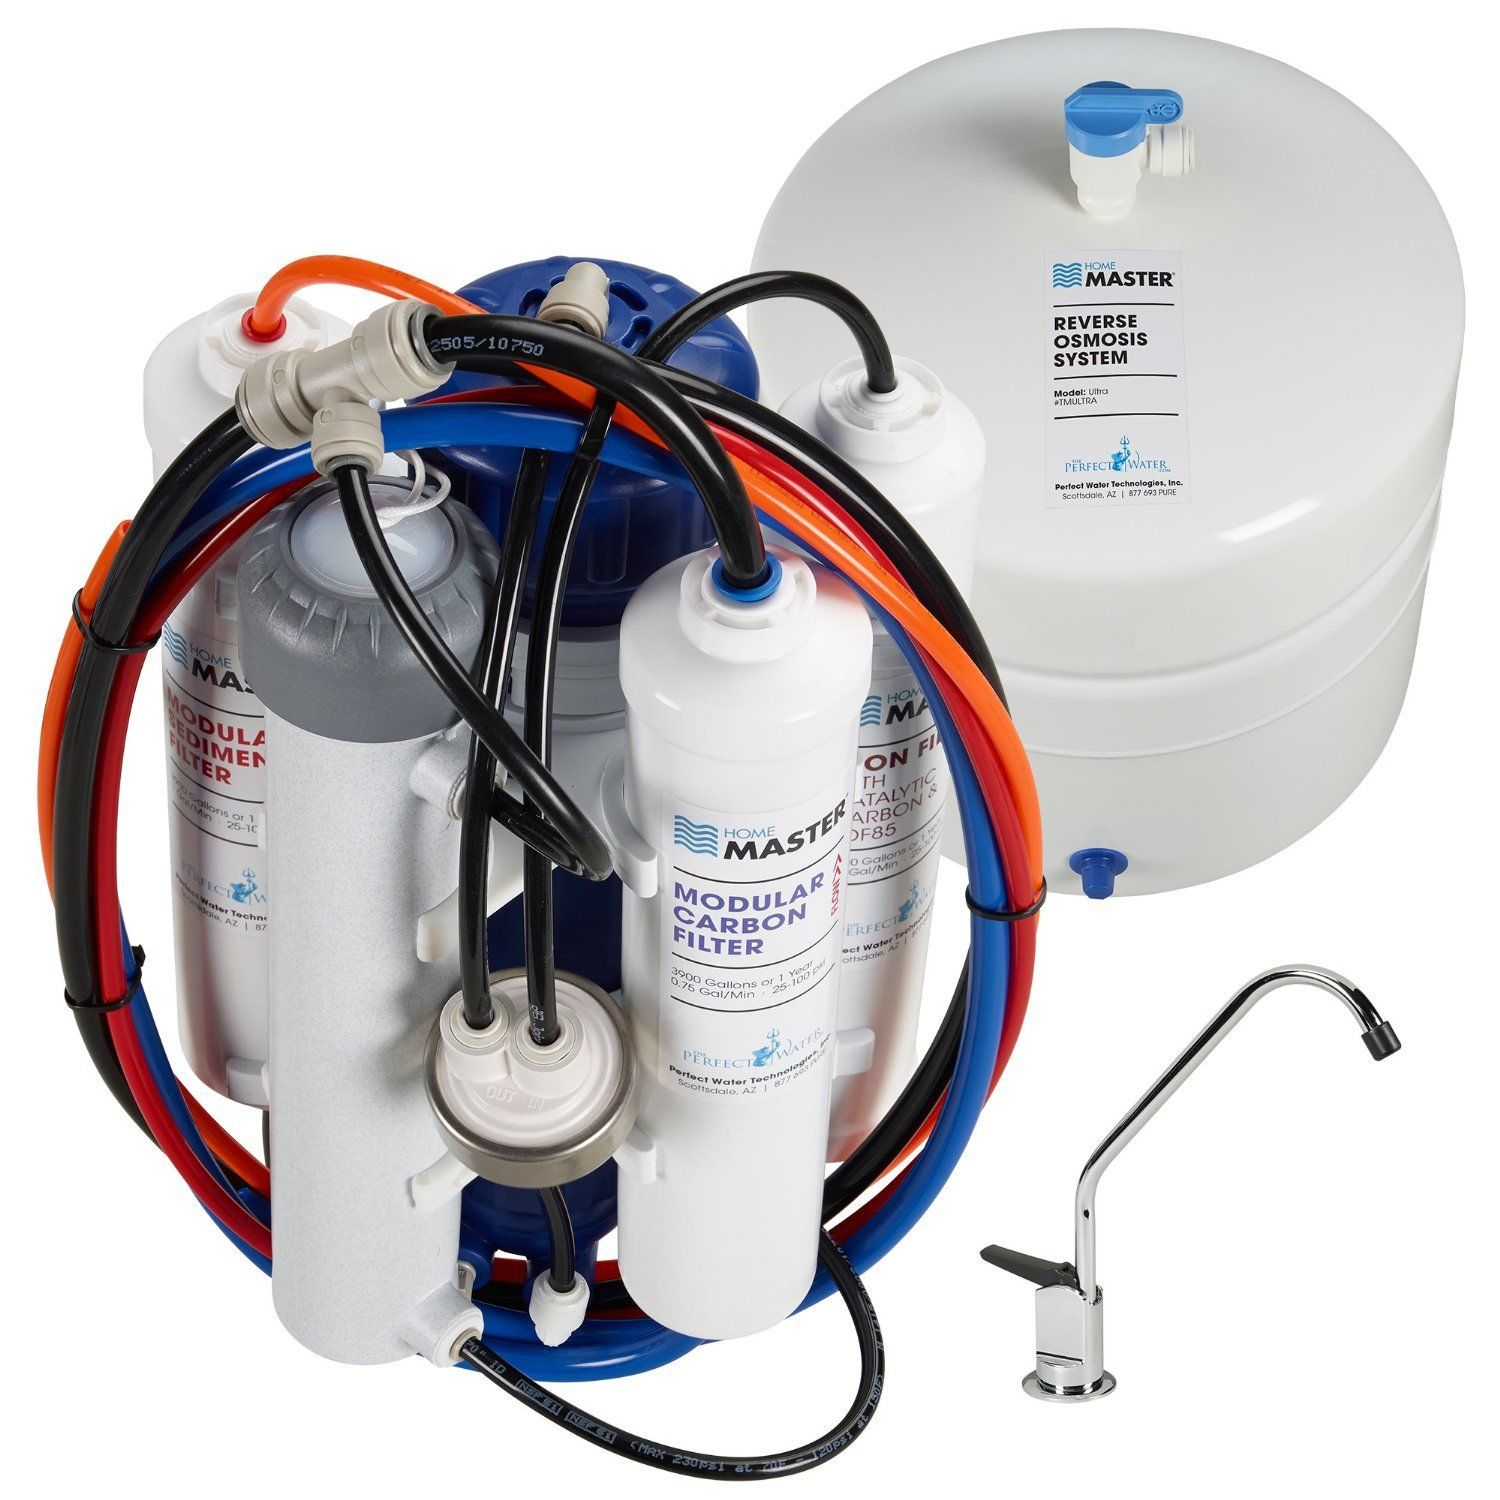 Home Master TMULTRA Ultra RO Undersink Reverse Osmosis System review